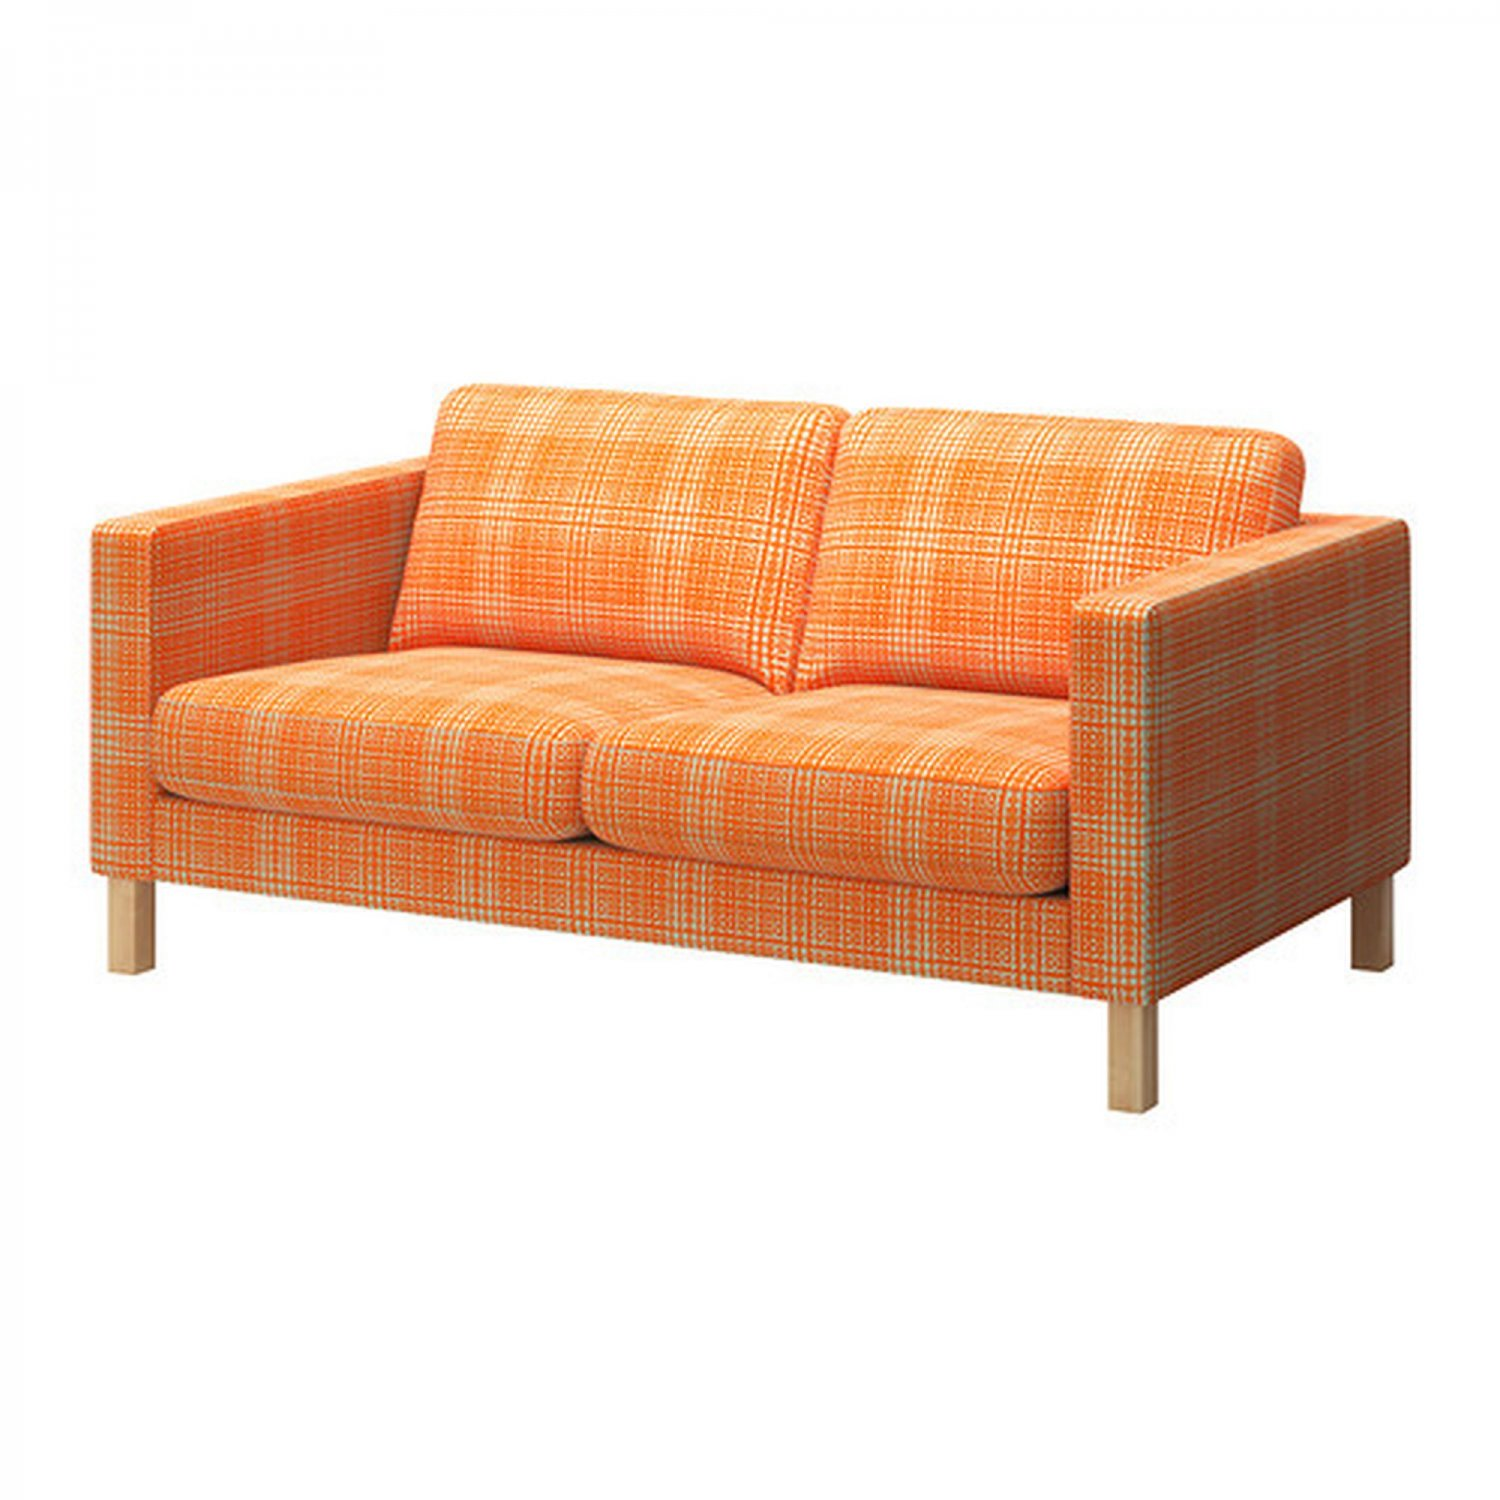 Ikea Karlstad 2 Seat Loveseat Sofa Slipcover Cover Husie Orange Print